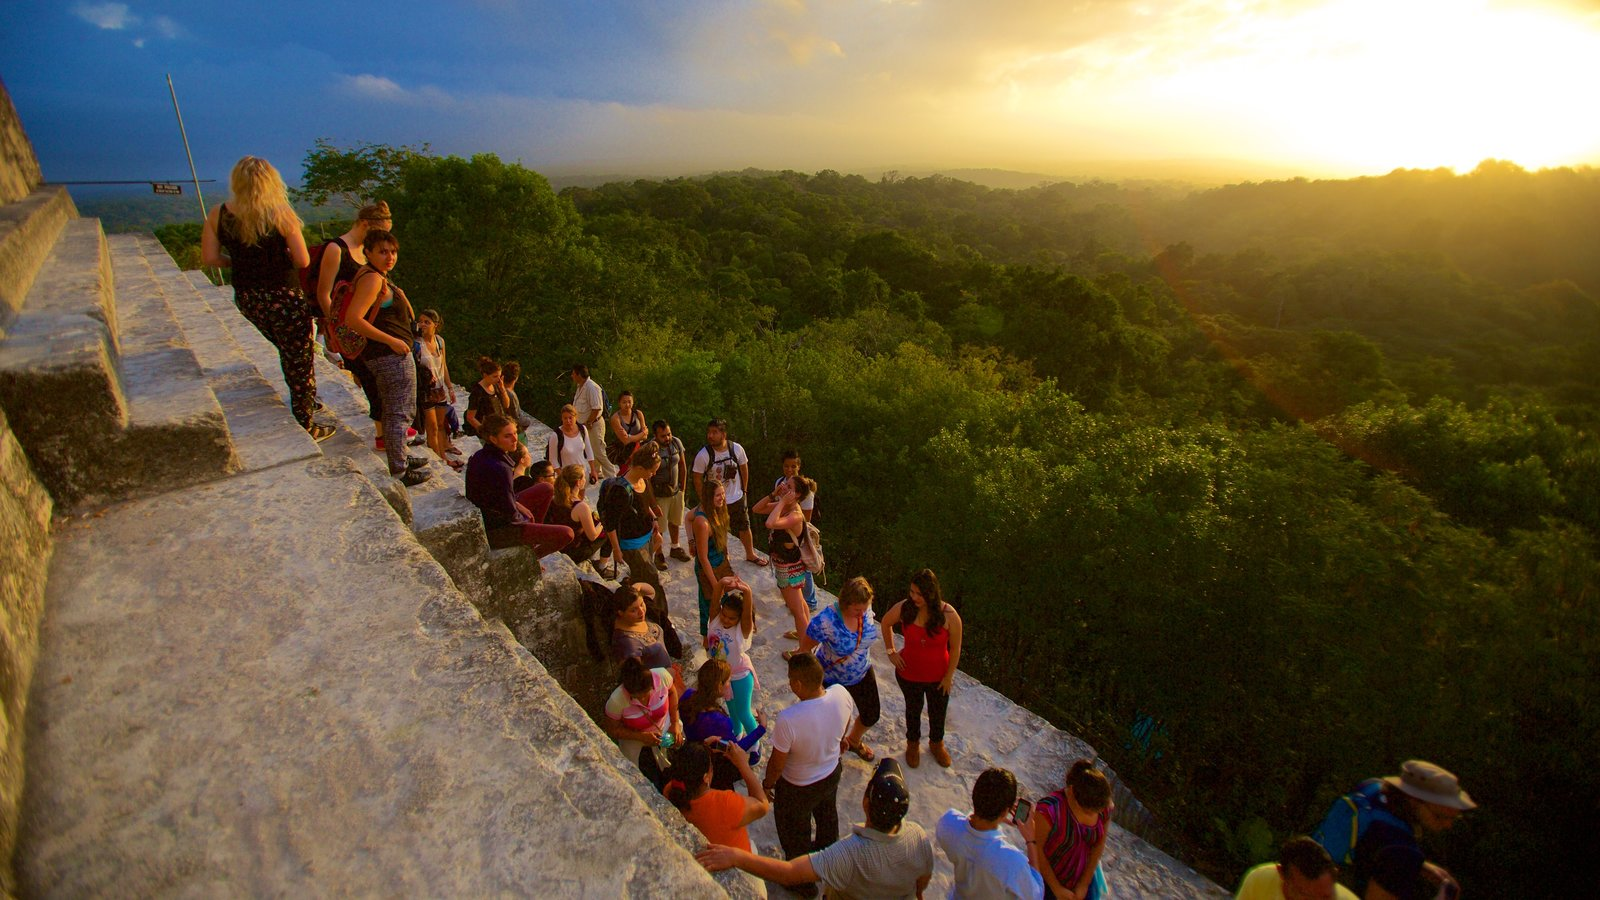 Tikal which includes a sunset, forest scenes and tranquil scenes